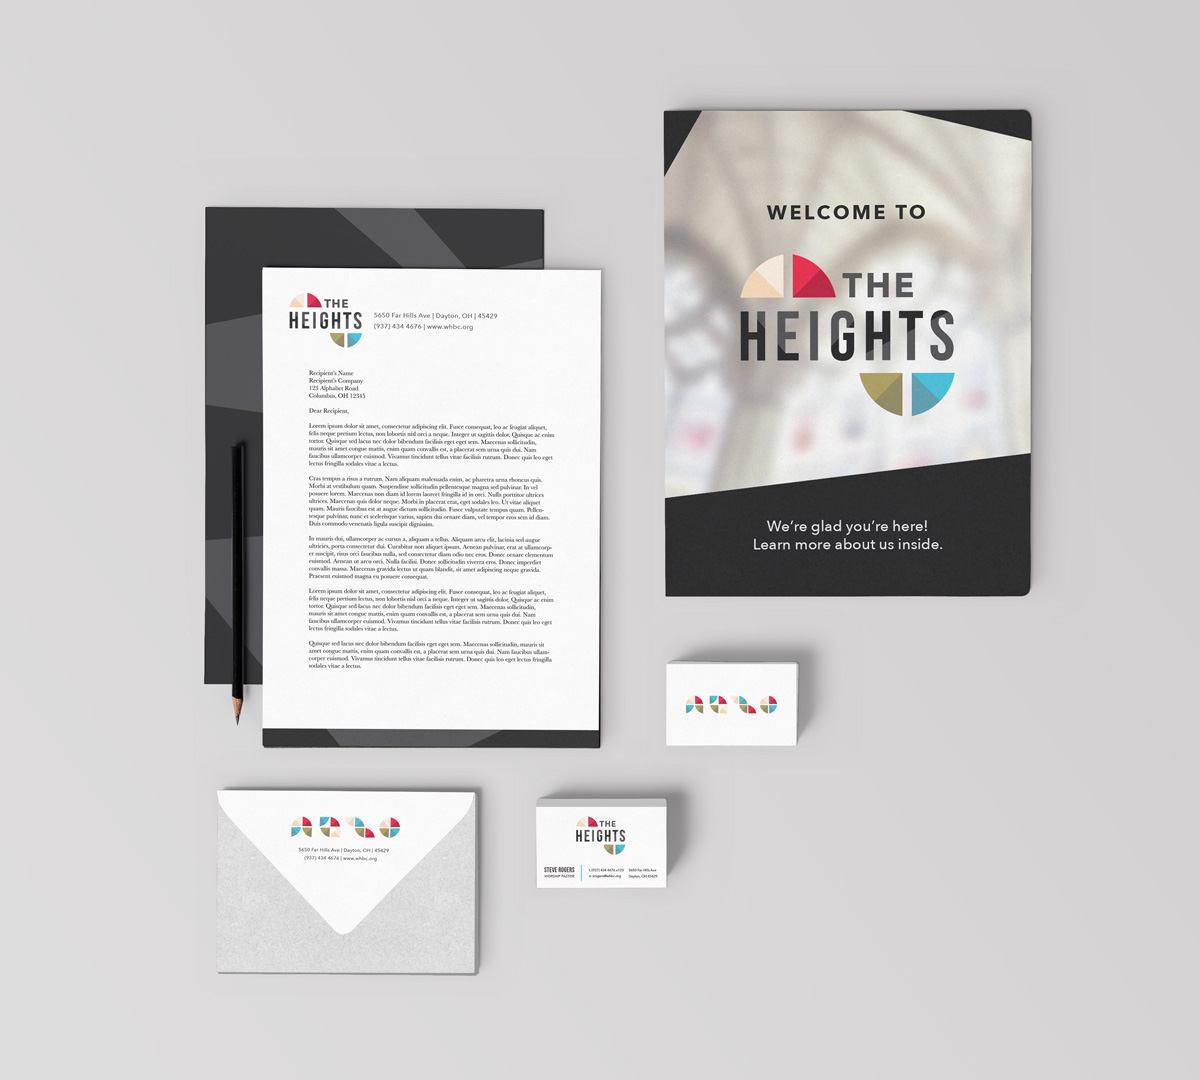 The Heights - Church Visual Brand and Logo Design - Business Card, Letterhead, Business Stationery Print Design